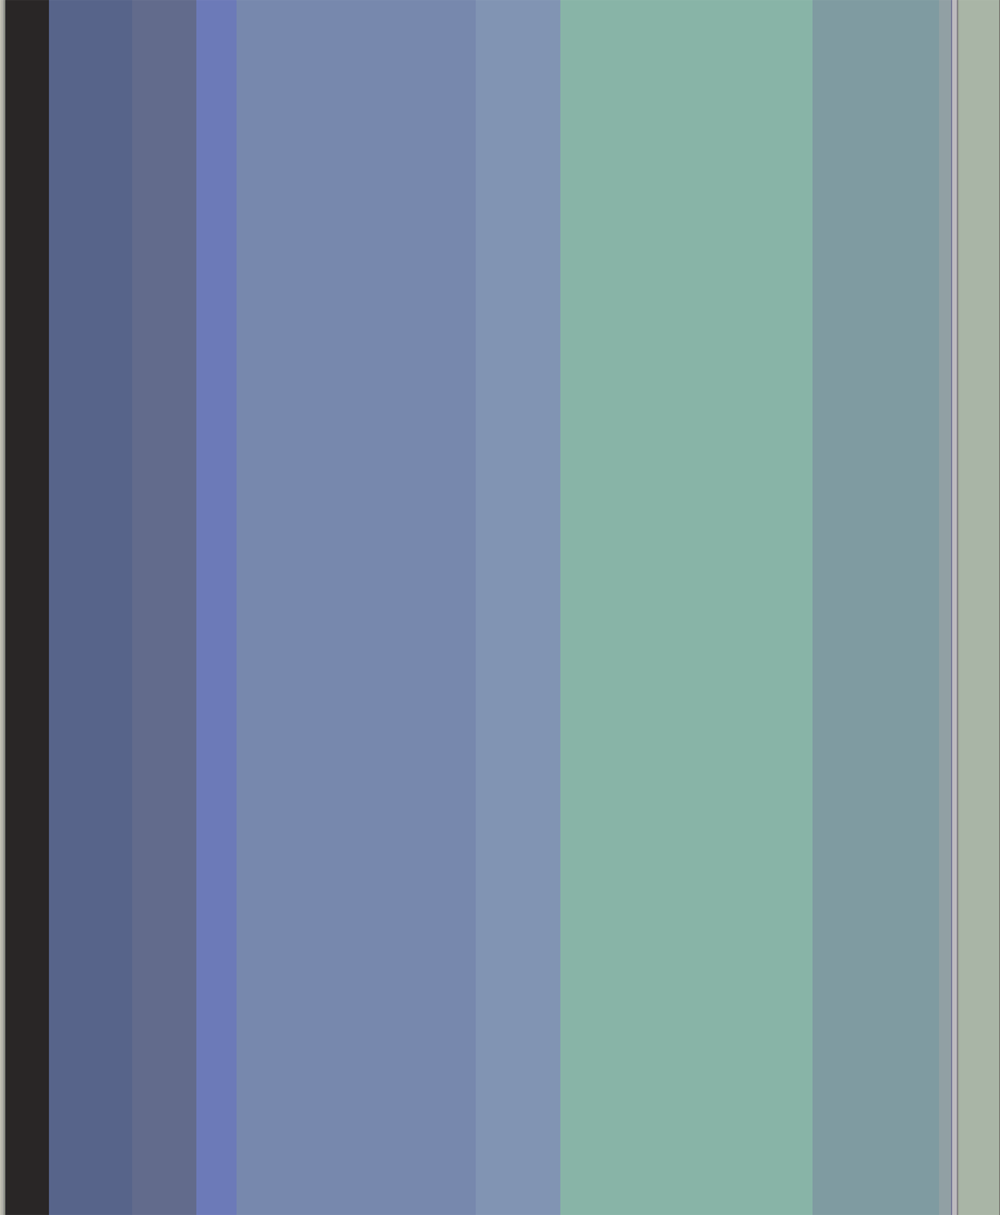 colours-20180206-sky.png